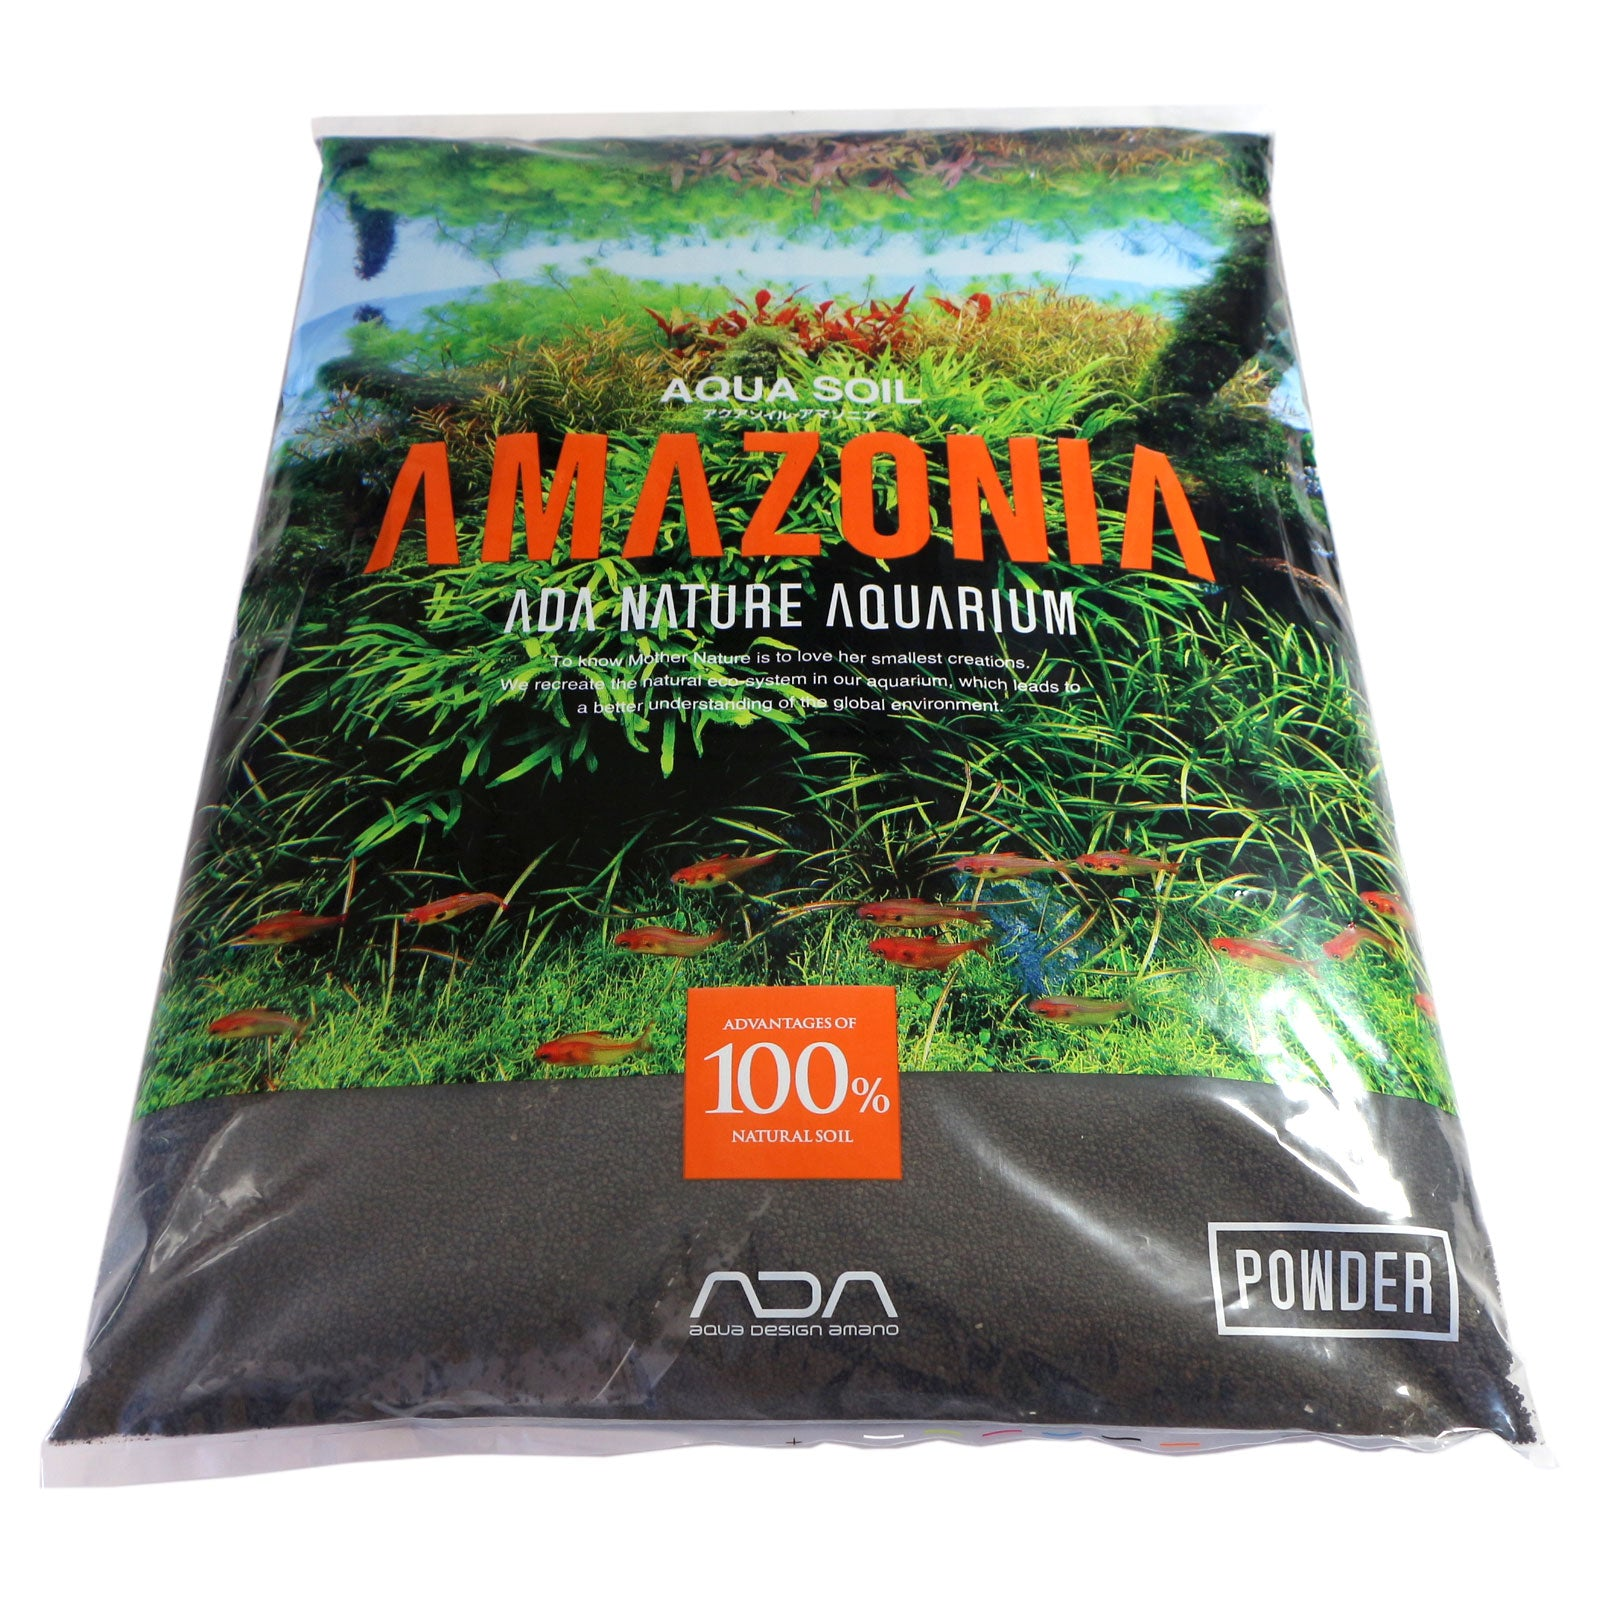 ADA Amazon Powder 9L